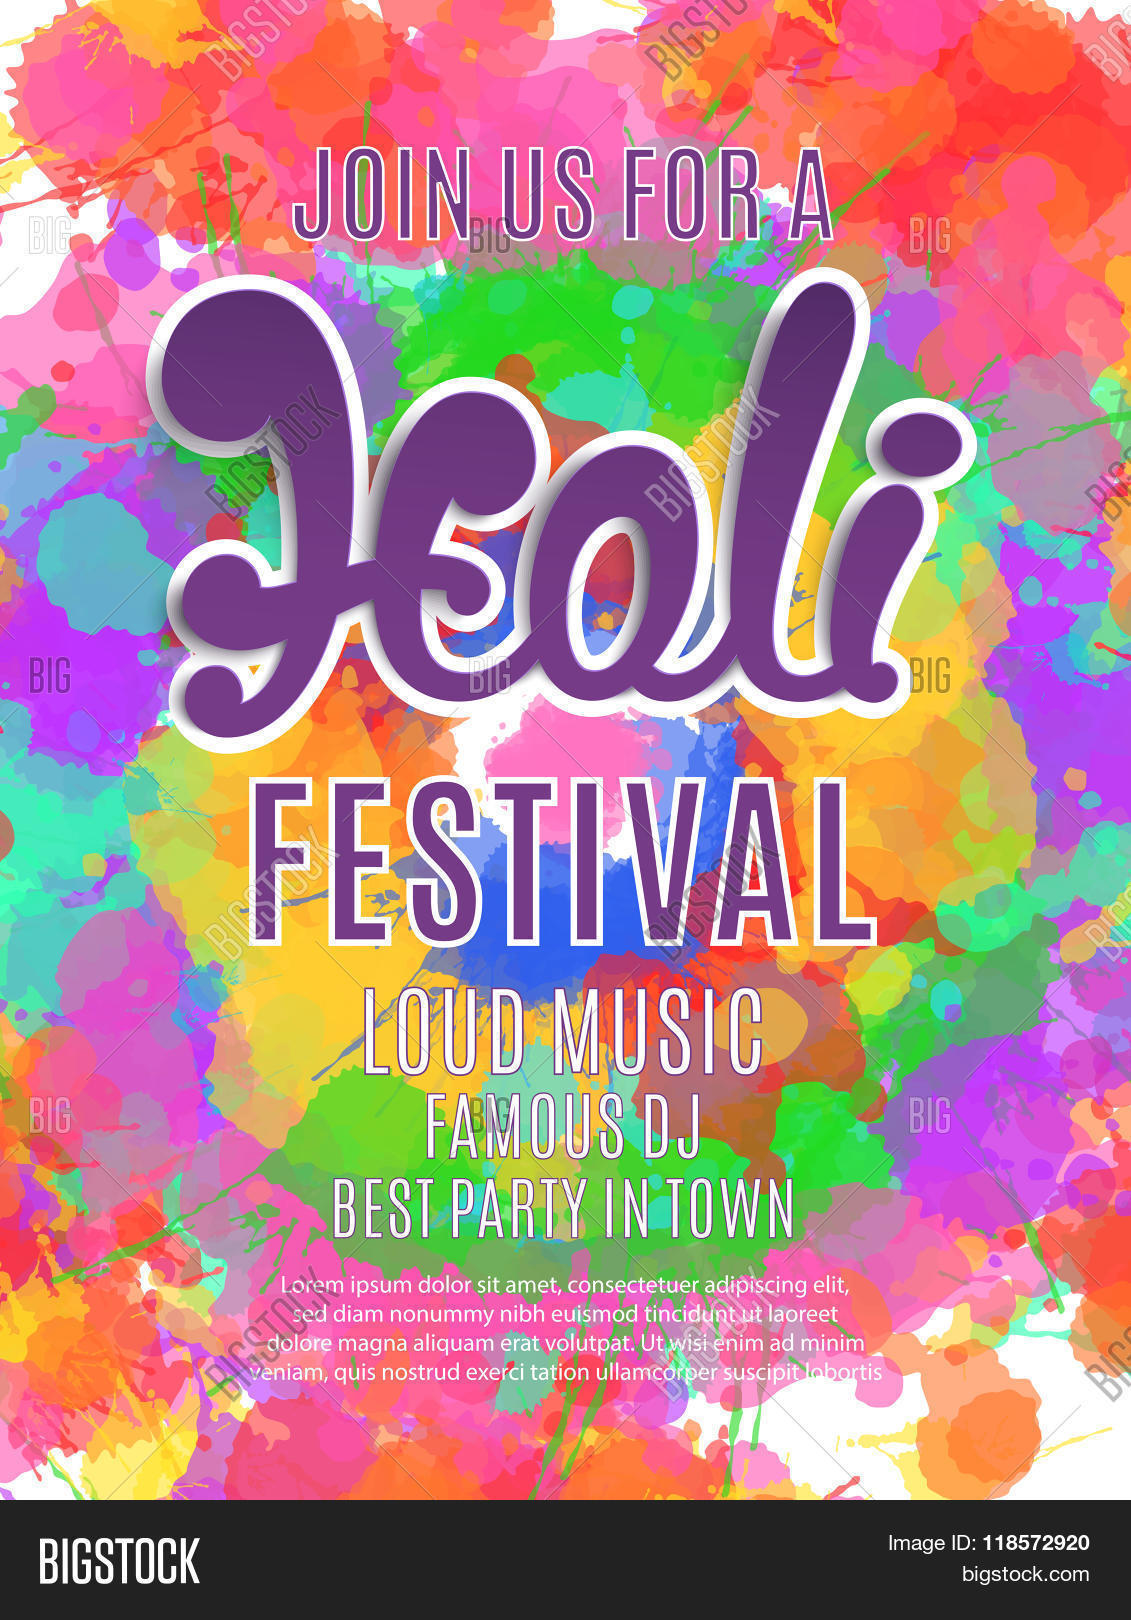 Holi Festival Poster Vector Photo Free Trial Bigstock